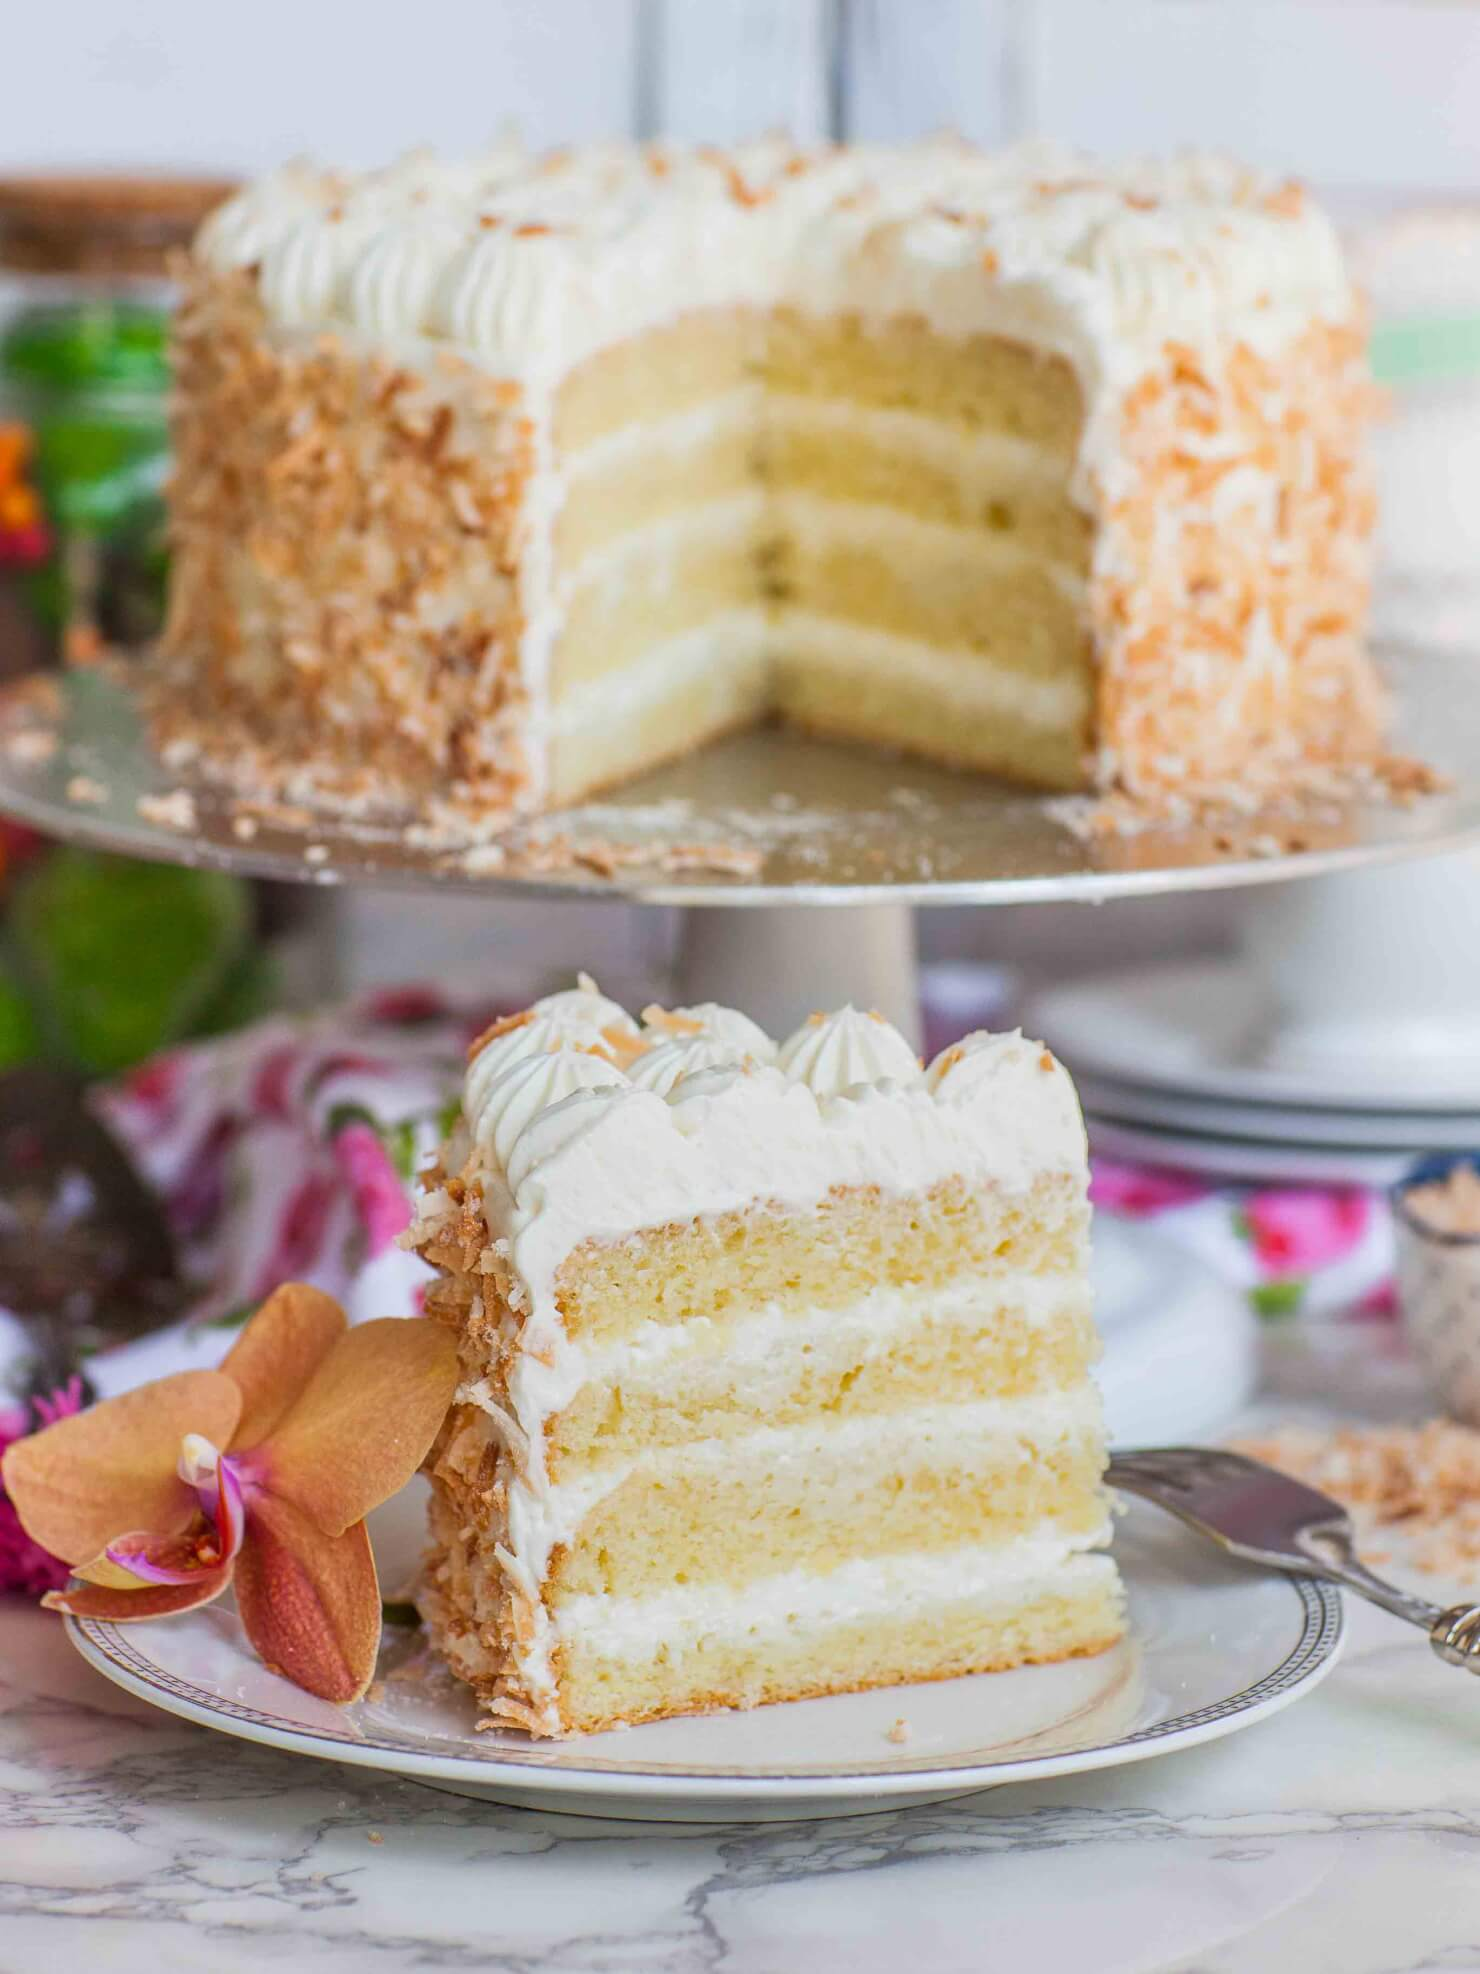 Italian wedding cake slice